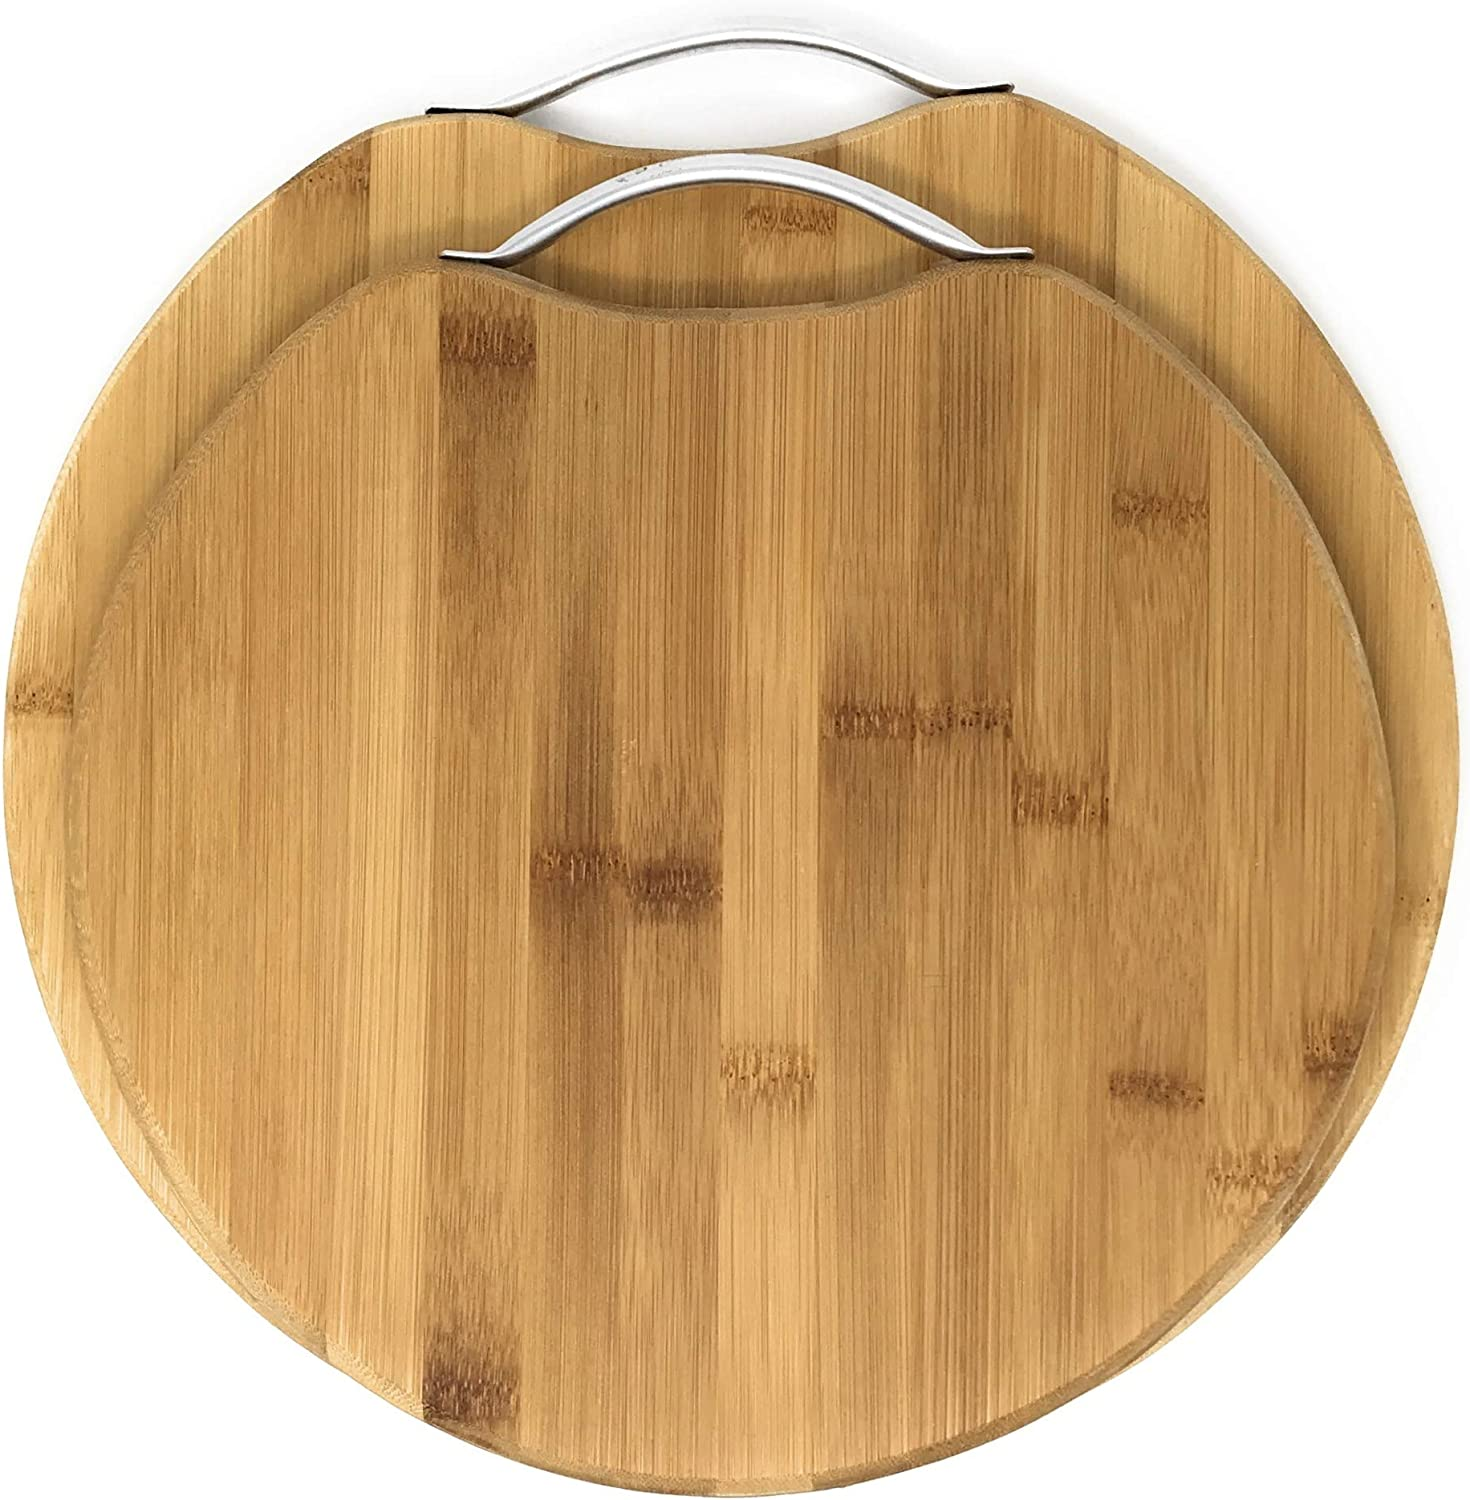 Rohi Chopping Board Round Wooden Natural Bamboo 2 Piece Set